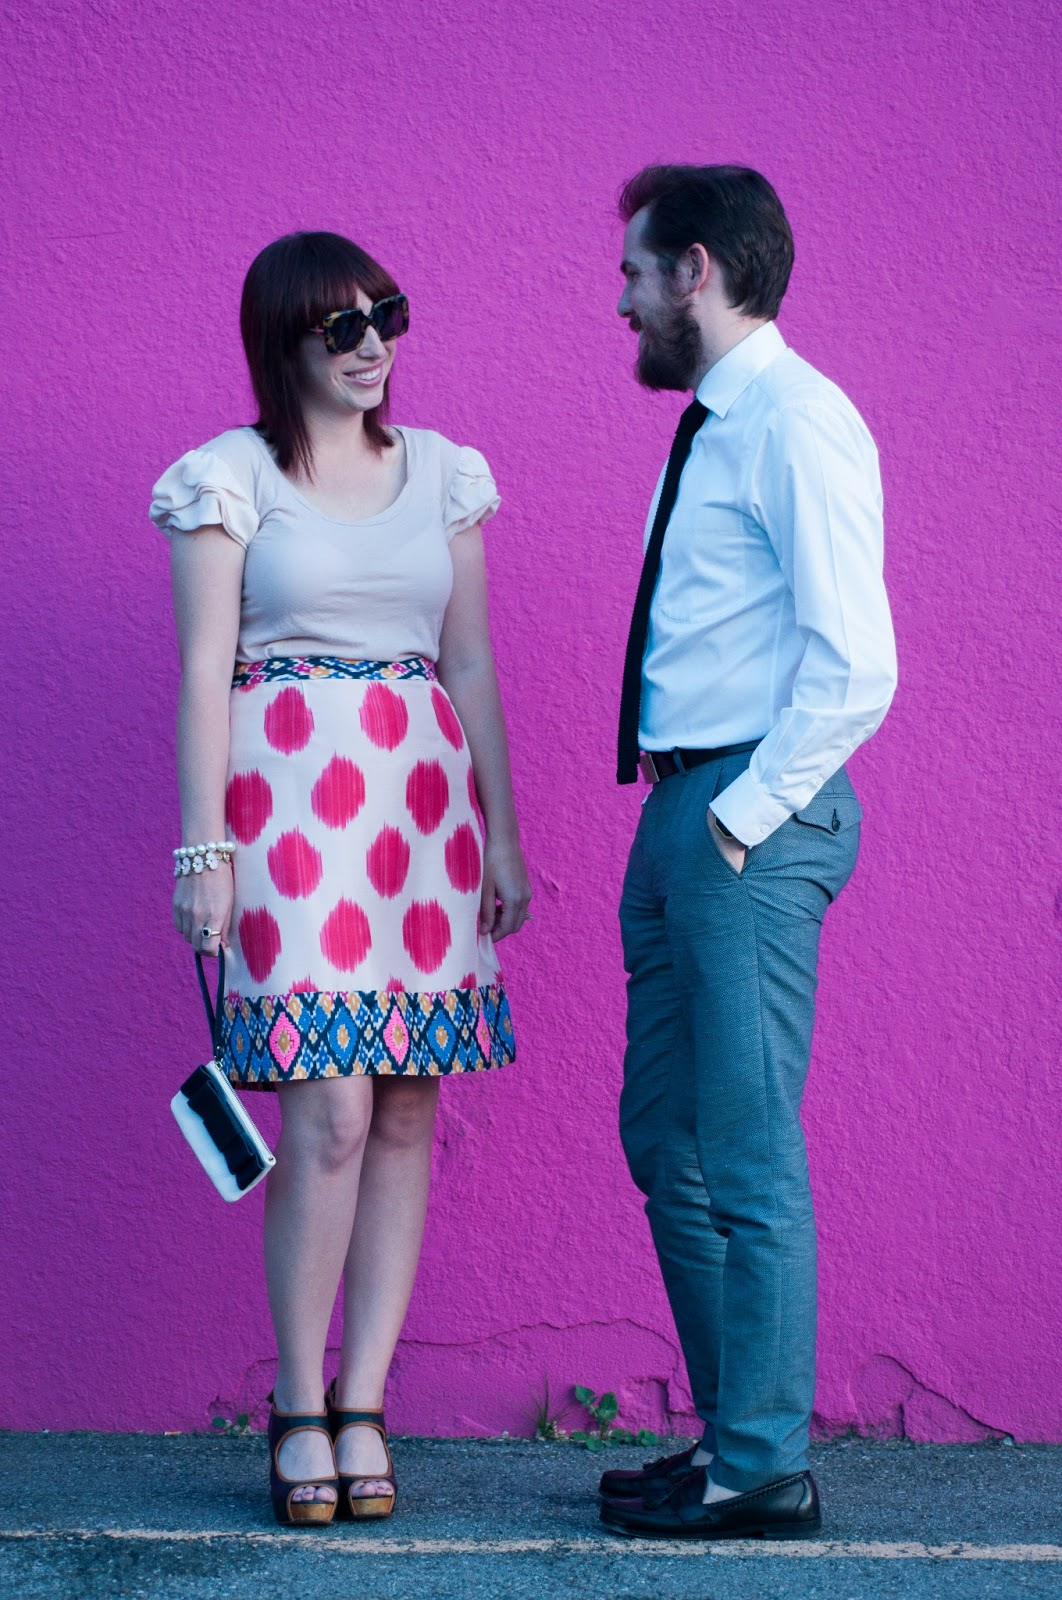 style blog, ootd blog, ootd, fashion blog, fashion blogger, mens style, mens style blog, mens ootd, jcrew ootd, anthropologie ootd, anthropologie, lucca couture, ruffled sleeves, slik sleeves, silk pencil skirt, ikat water color skirt, maeve, maeve skirt, maeve watercolor ikat skirt, sam edelman, sam edelman wedges, seychelles, seychelles down to the wire wedge, kate spade, kate spade bow clutch, kate spade new york, kate spade clutch, karen walker, karen walker sunglasses, karen walker betsy, nordstrom dress shirt, H and M, pattern dress slacks, allen edmonds maxfield loafer, express menswear, express, express 2 in 1 reversible belt, nixon gold watch, nixon re-run, jcrew, jcrew knit tie